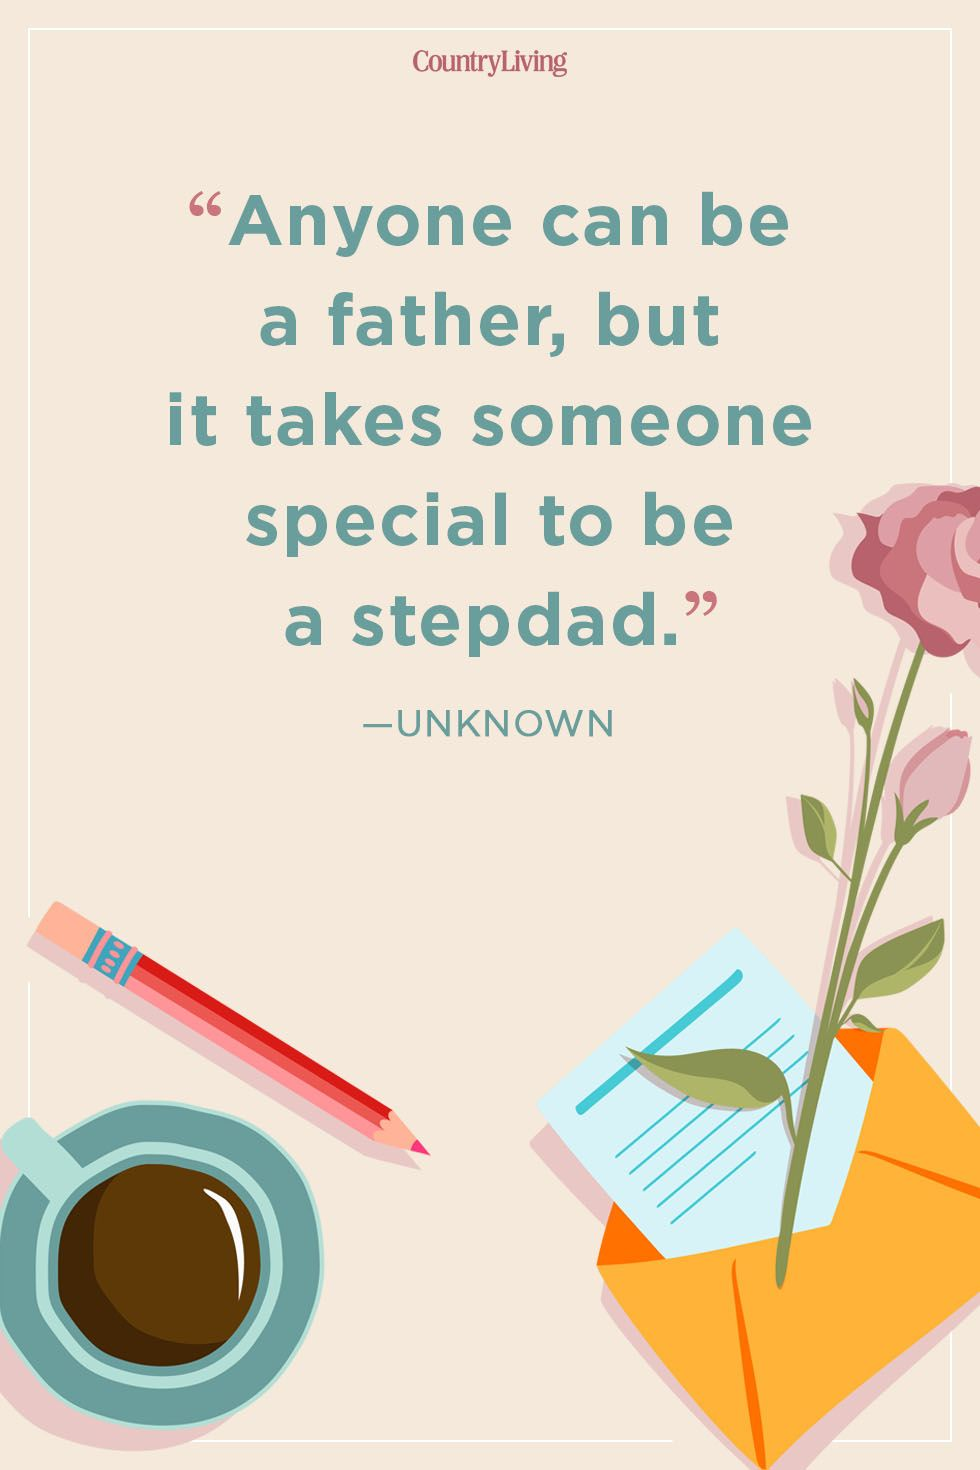 Step Dad Quotes 19 Best Step Dad Quotes   Stepfather Quotes for Father's Day Step Dad Quotes